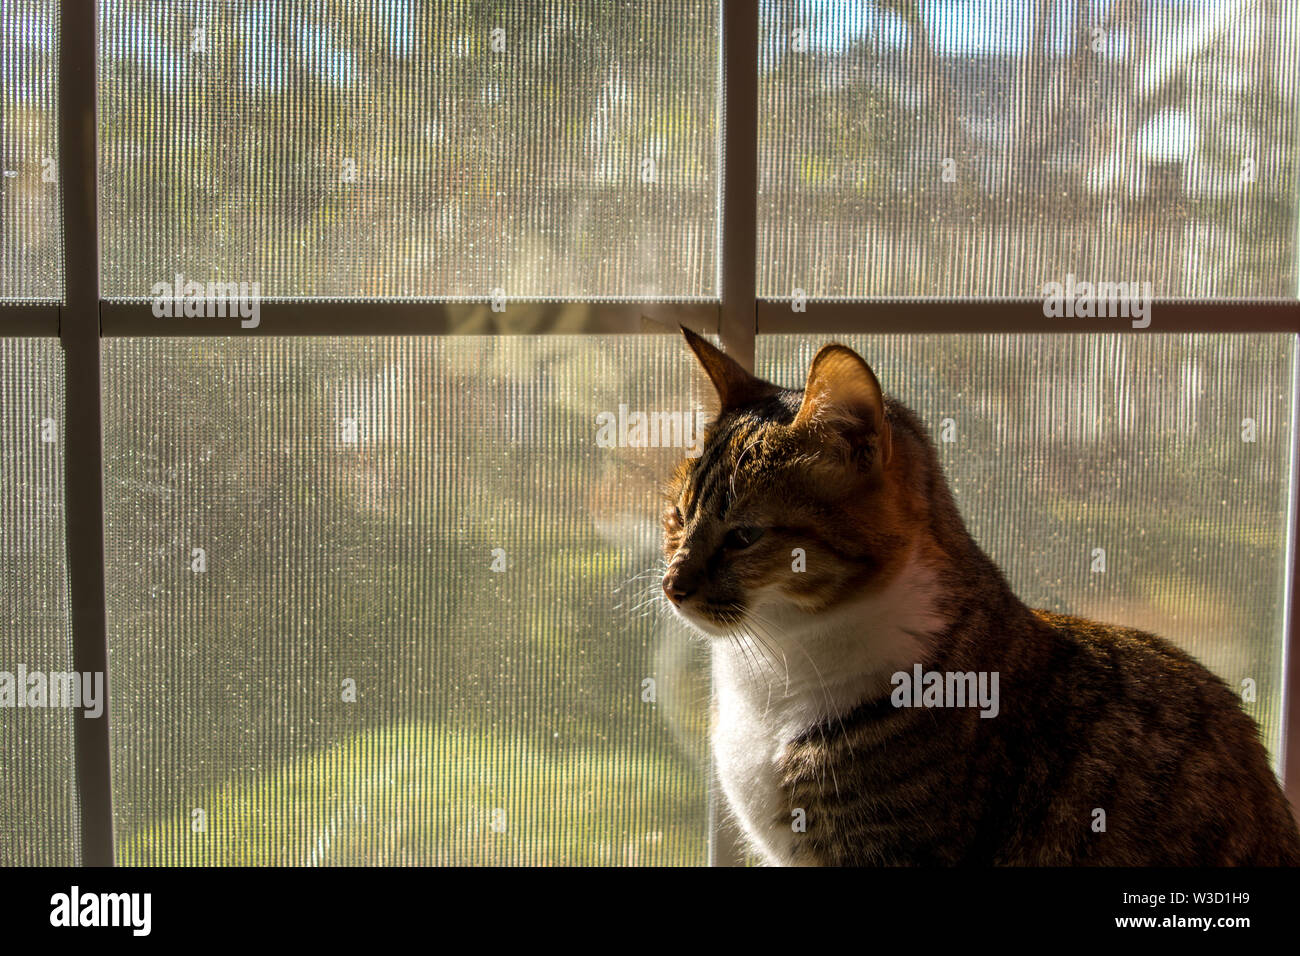 An indoor cat looking out window. - Stock Image